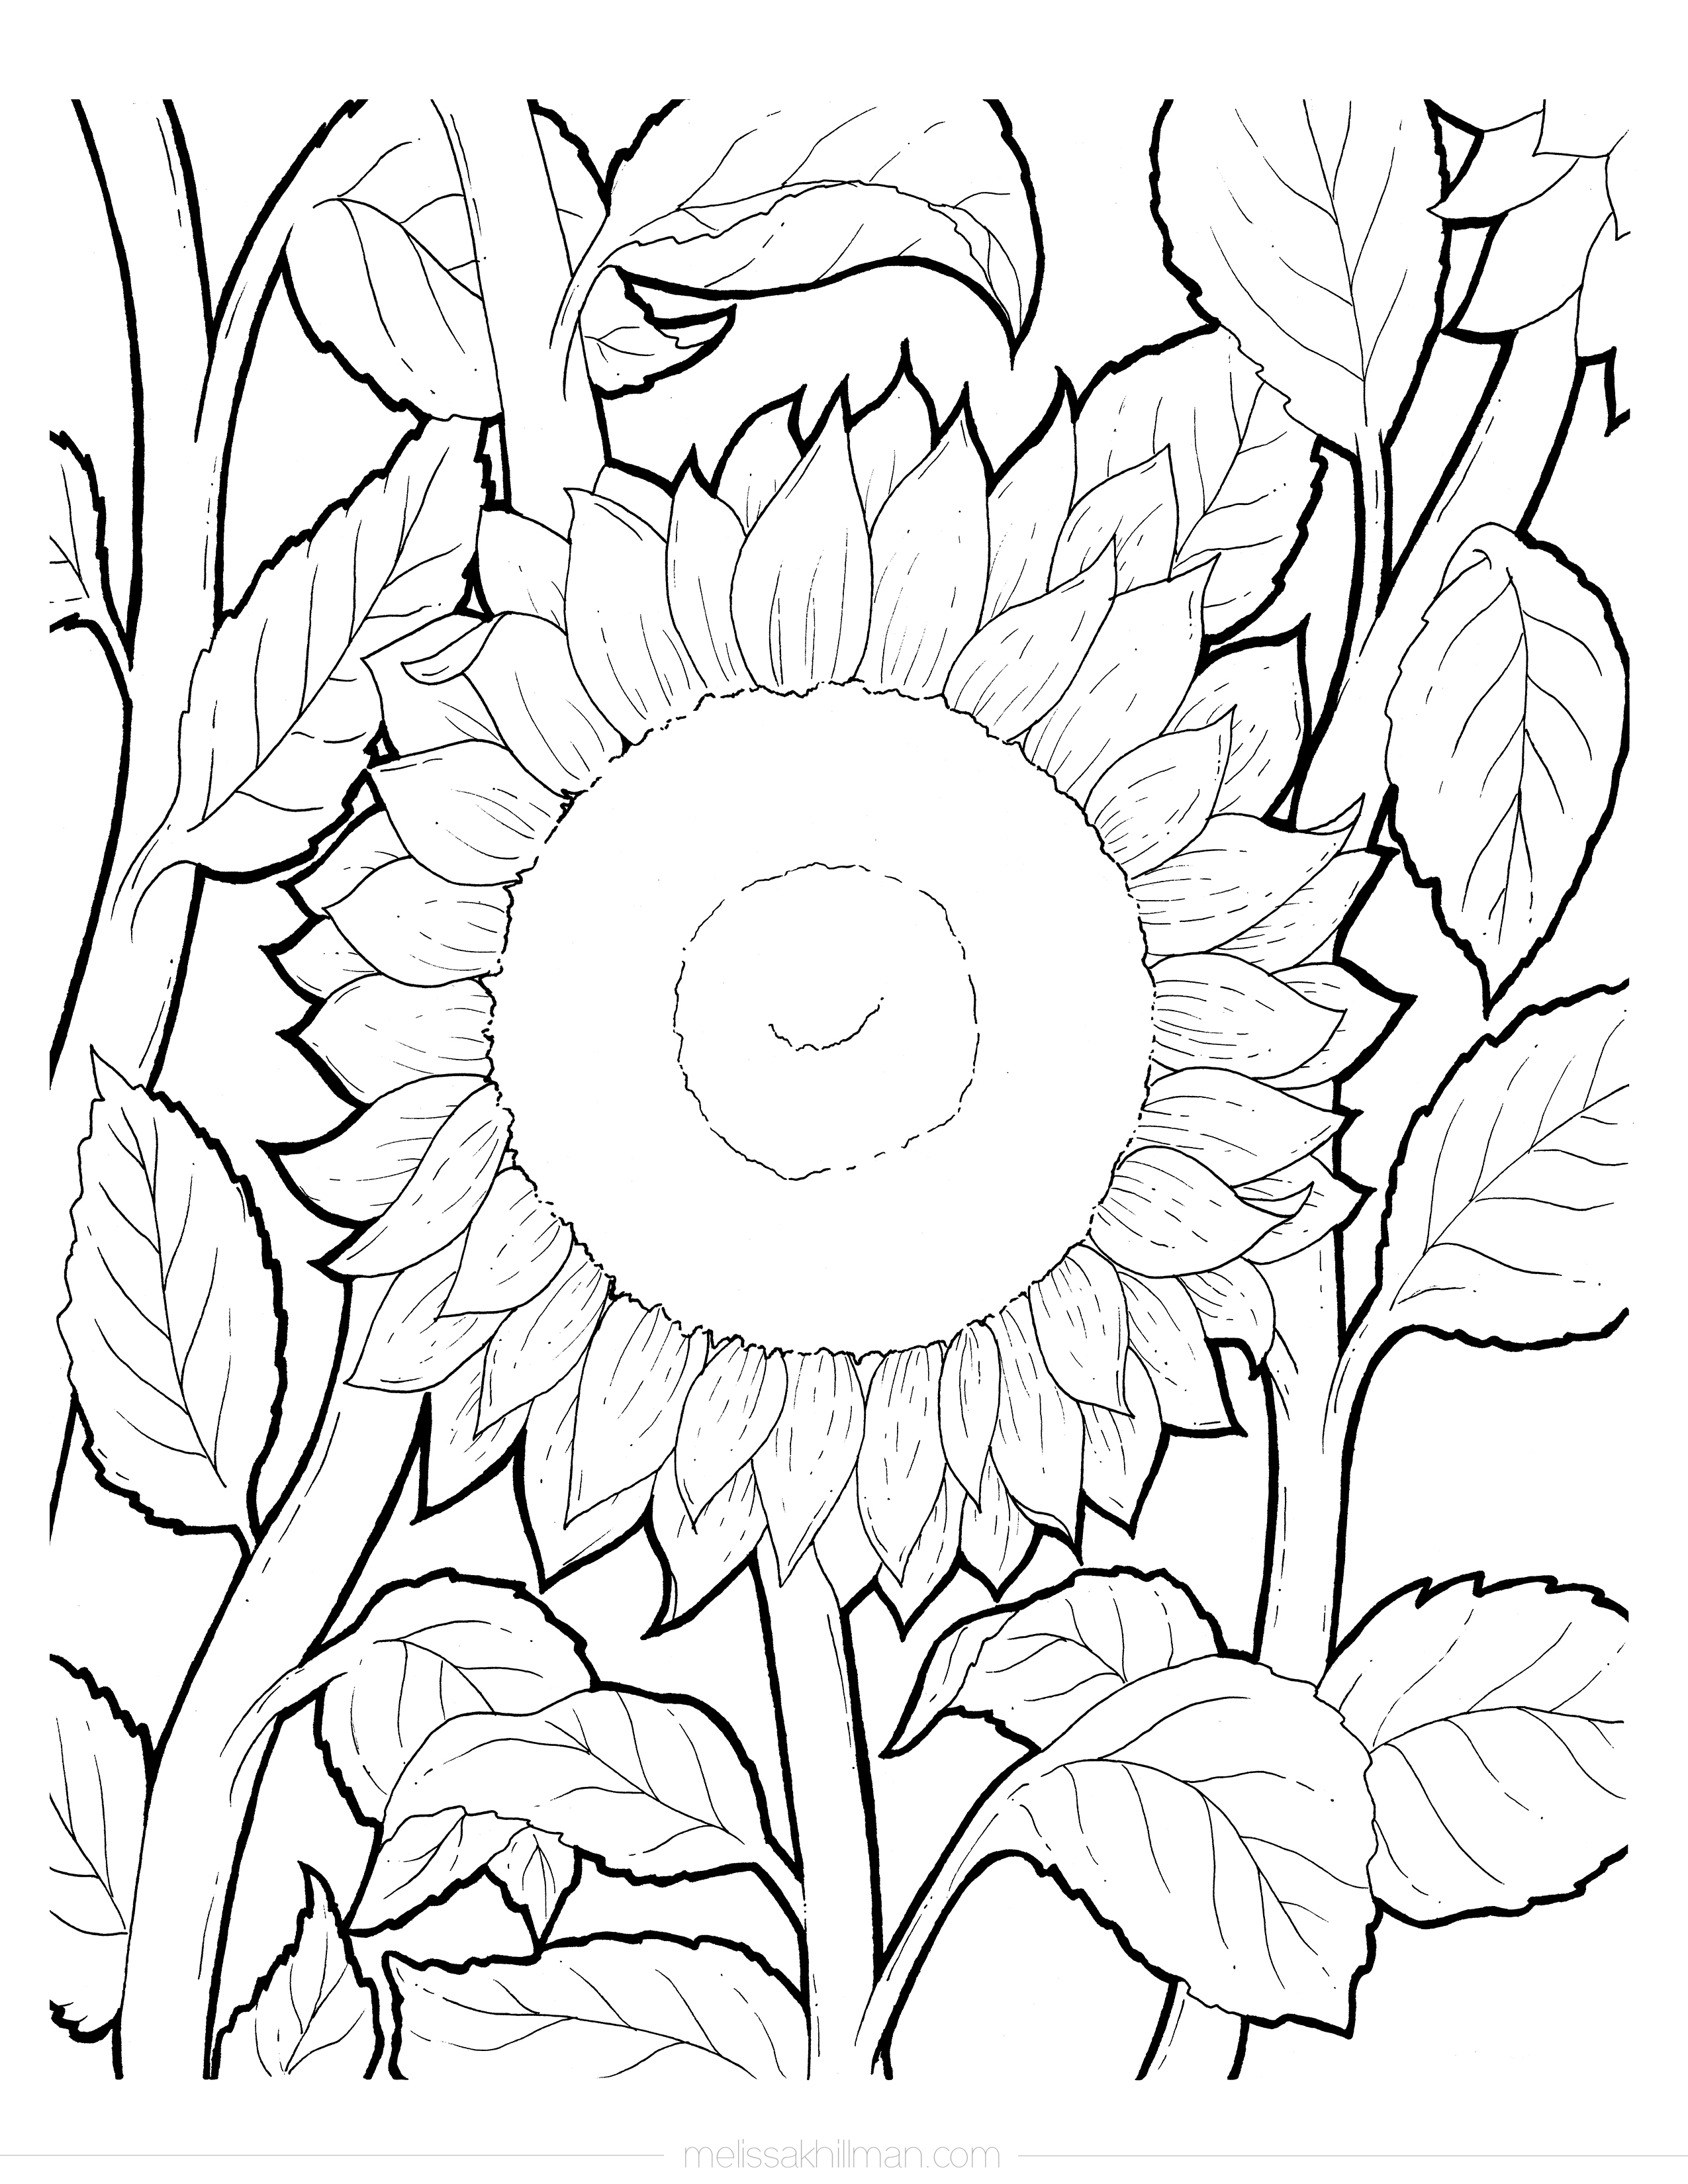 coloring sunflower picture sunflower coloring page picture coloring sunflower